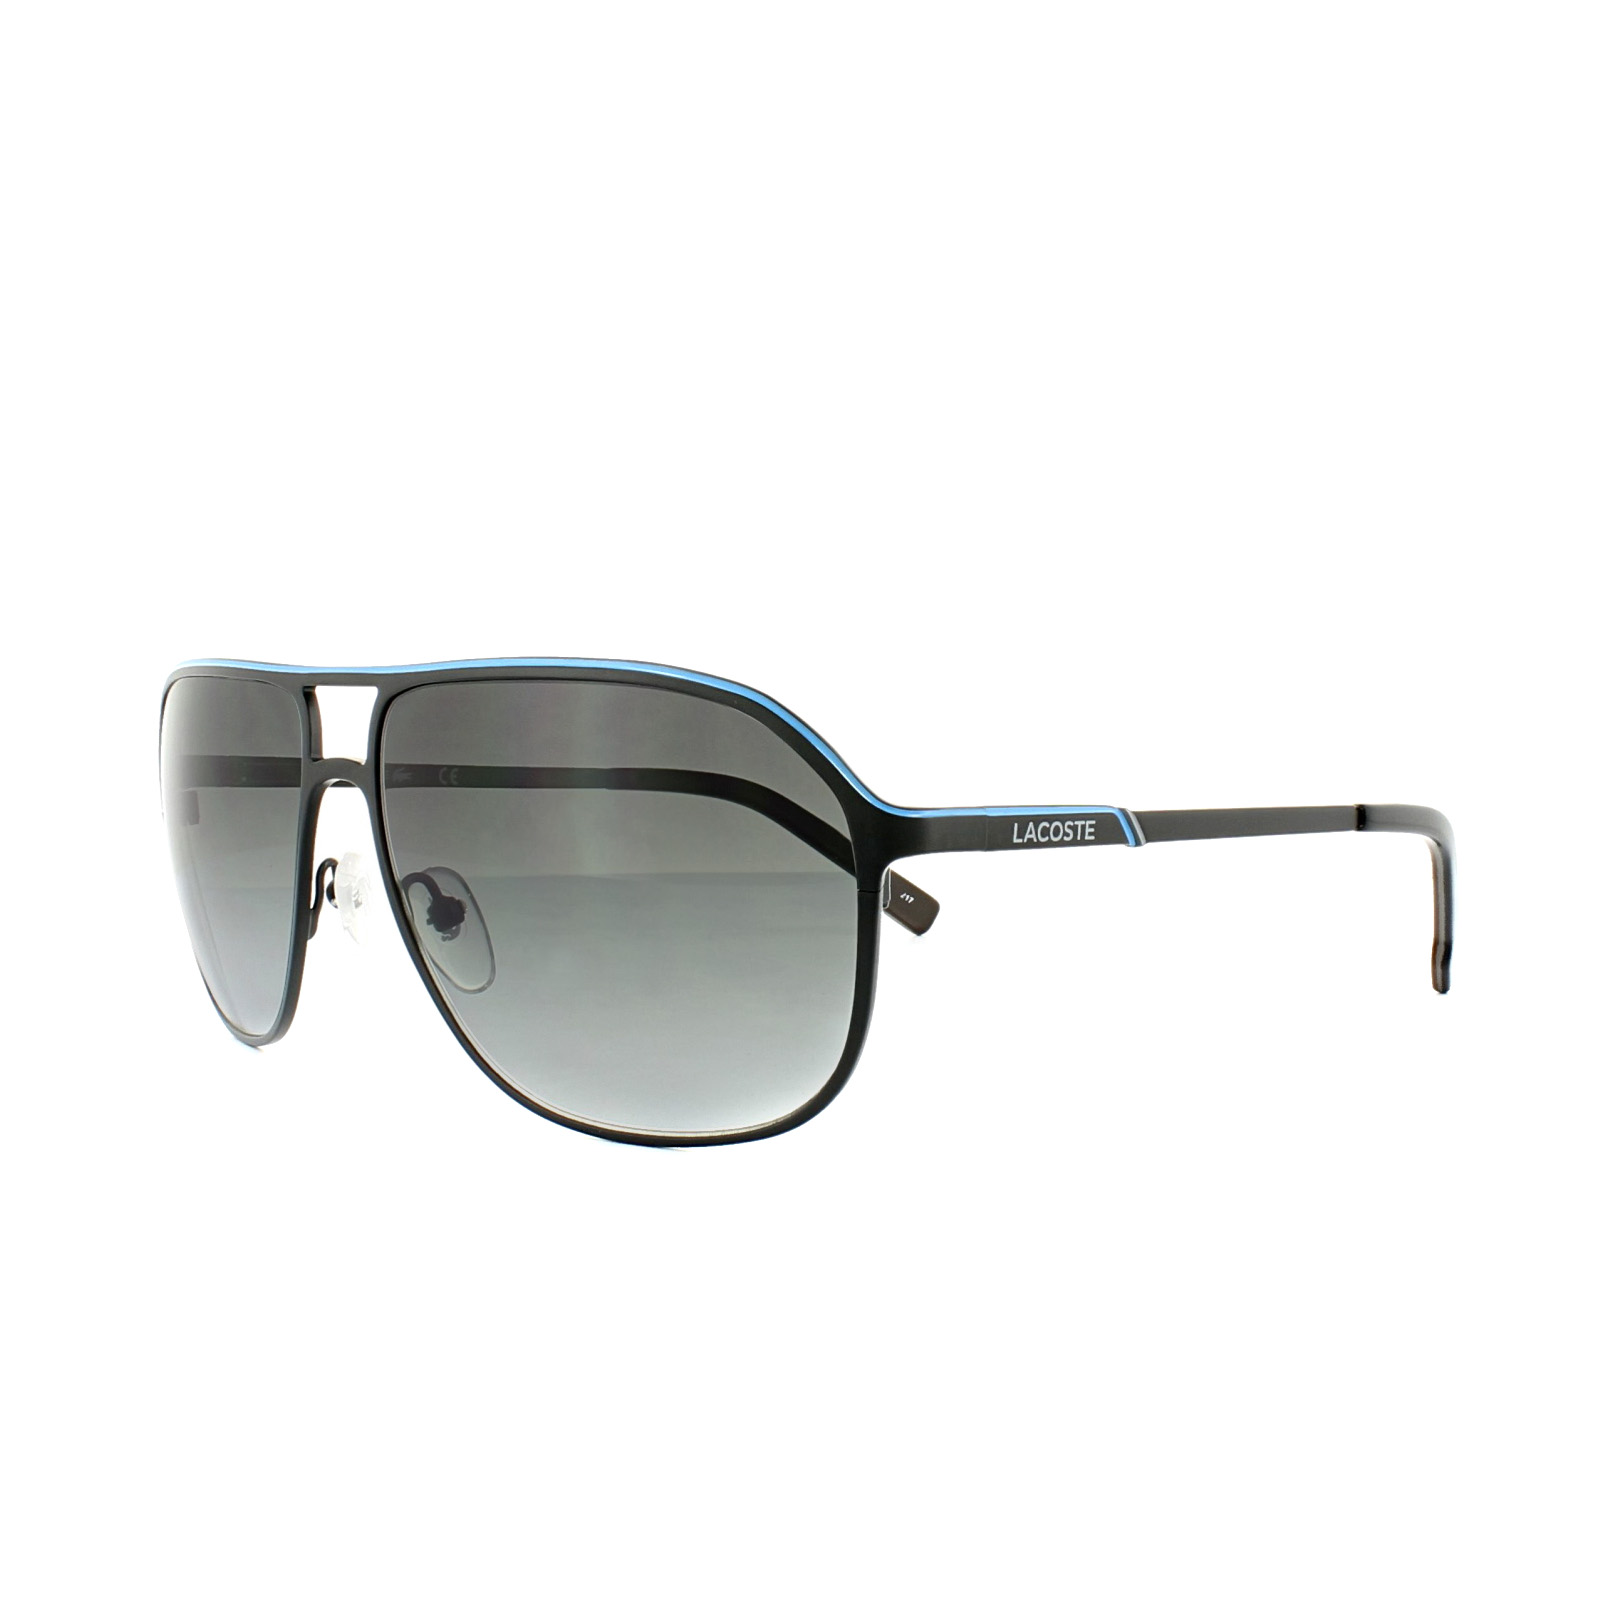 7fe46f94ff8d Lacoste Sunglasses L139SB 001 Satin Black Grey Gradient 886895268004 ...